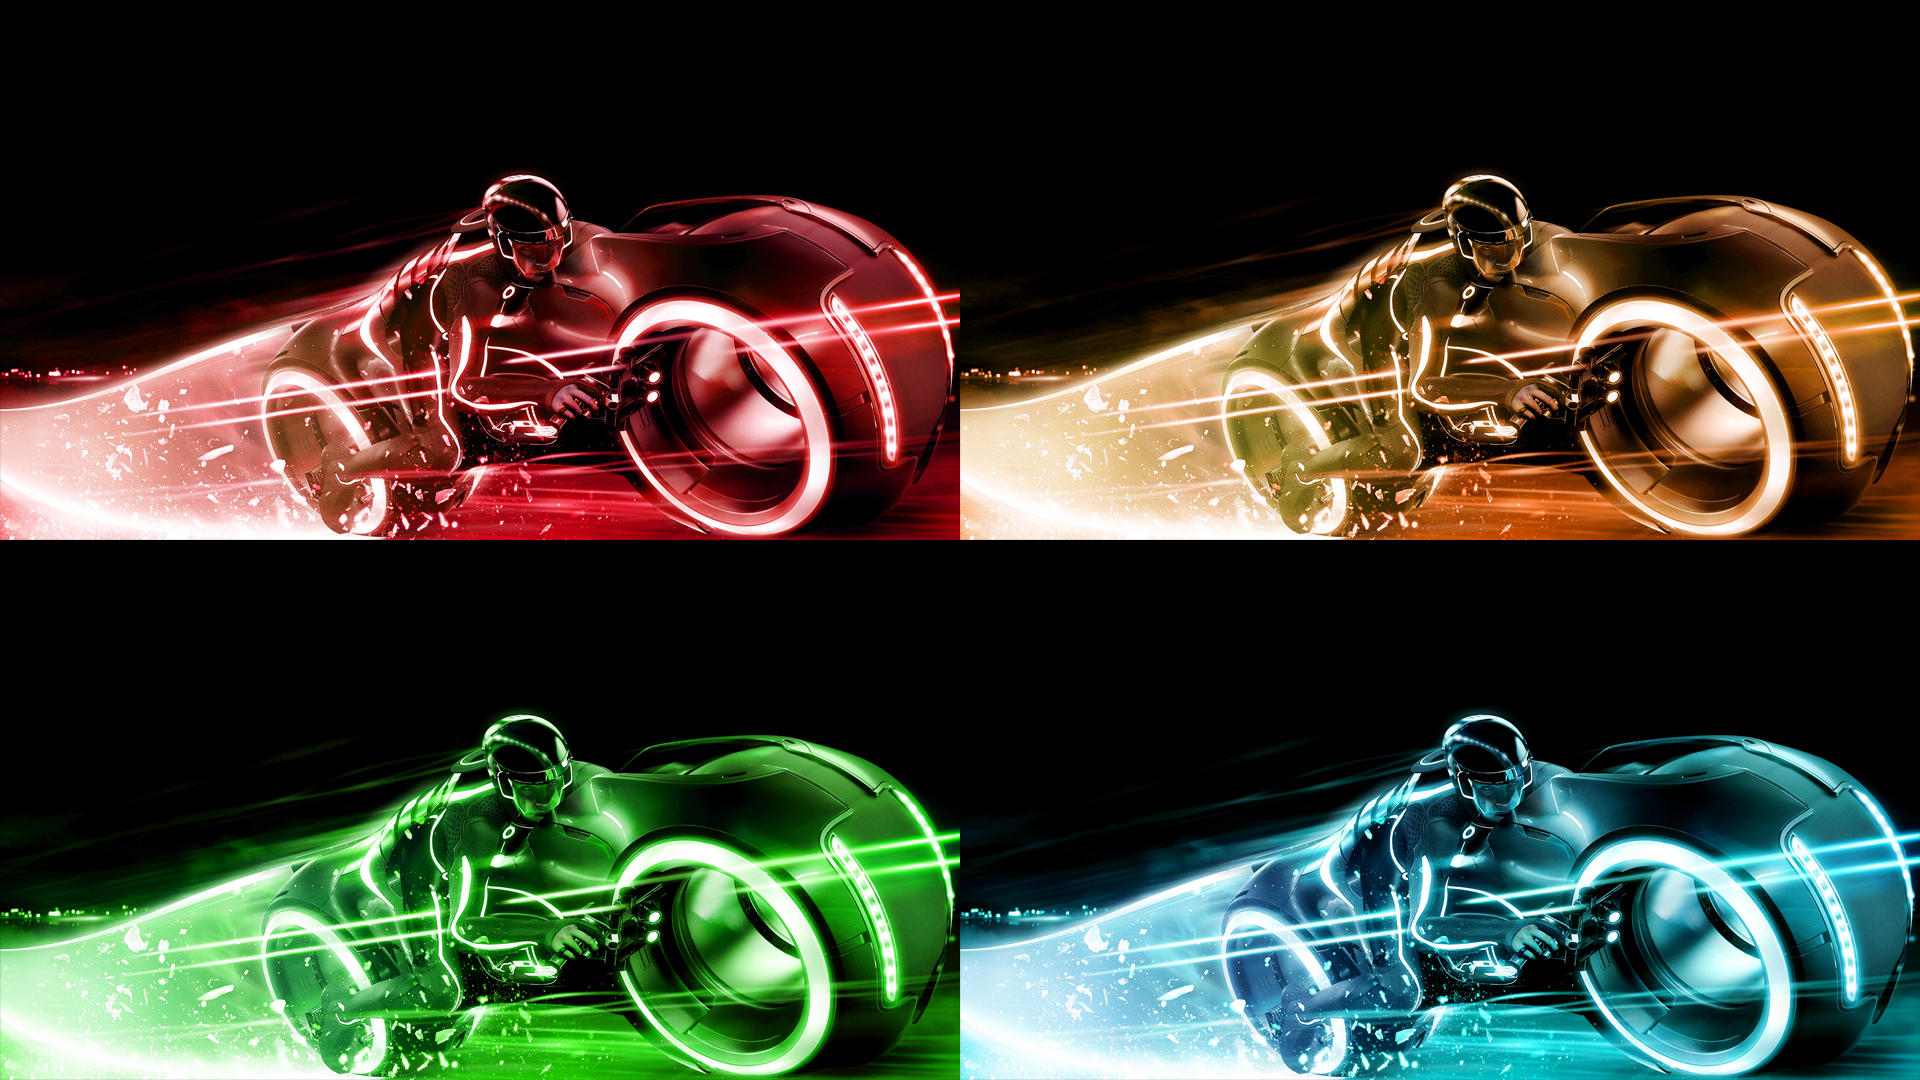 awesome tronlegacy wallpapers - photo #25